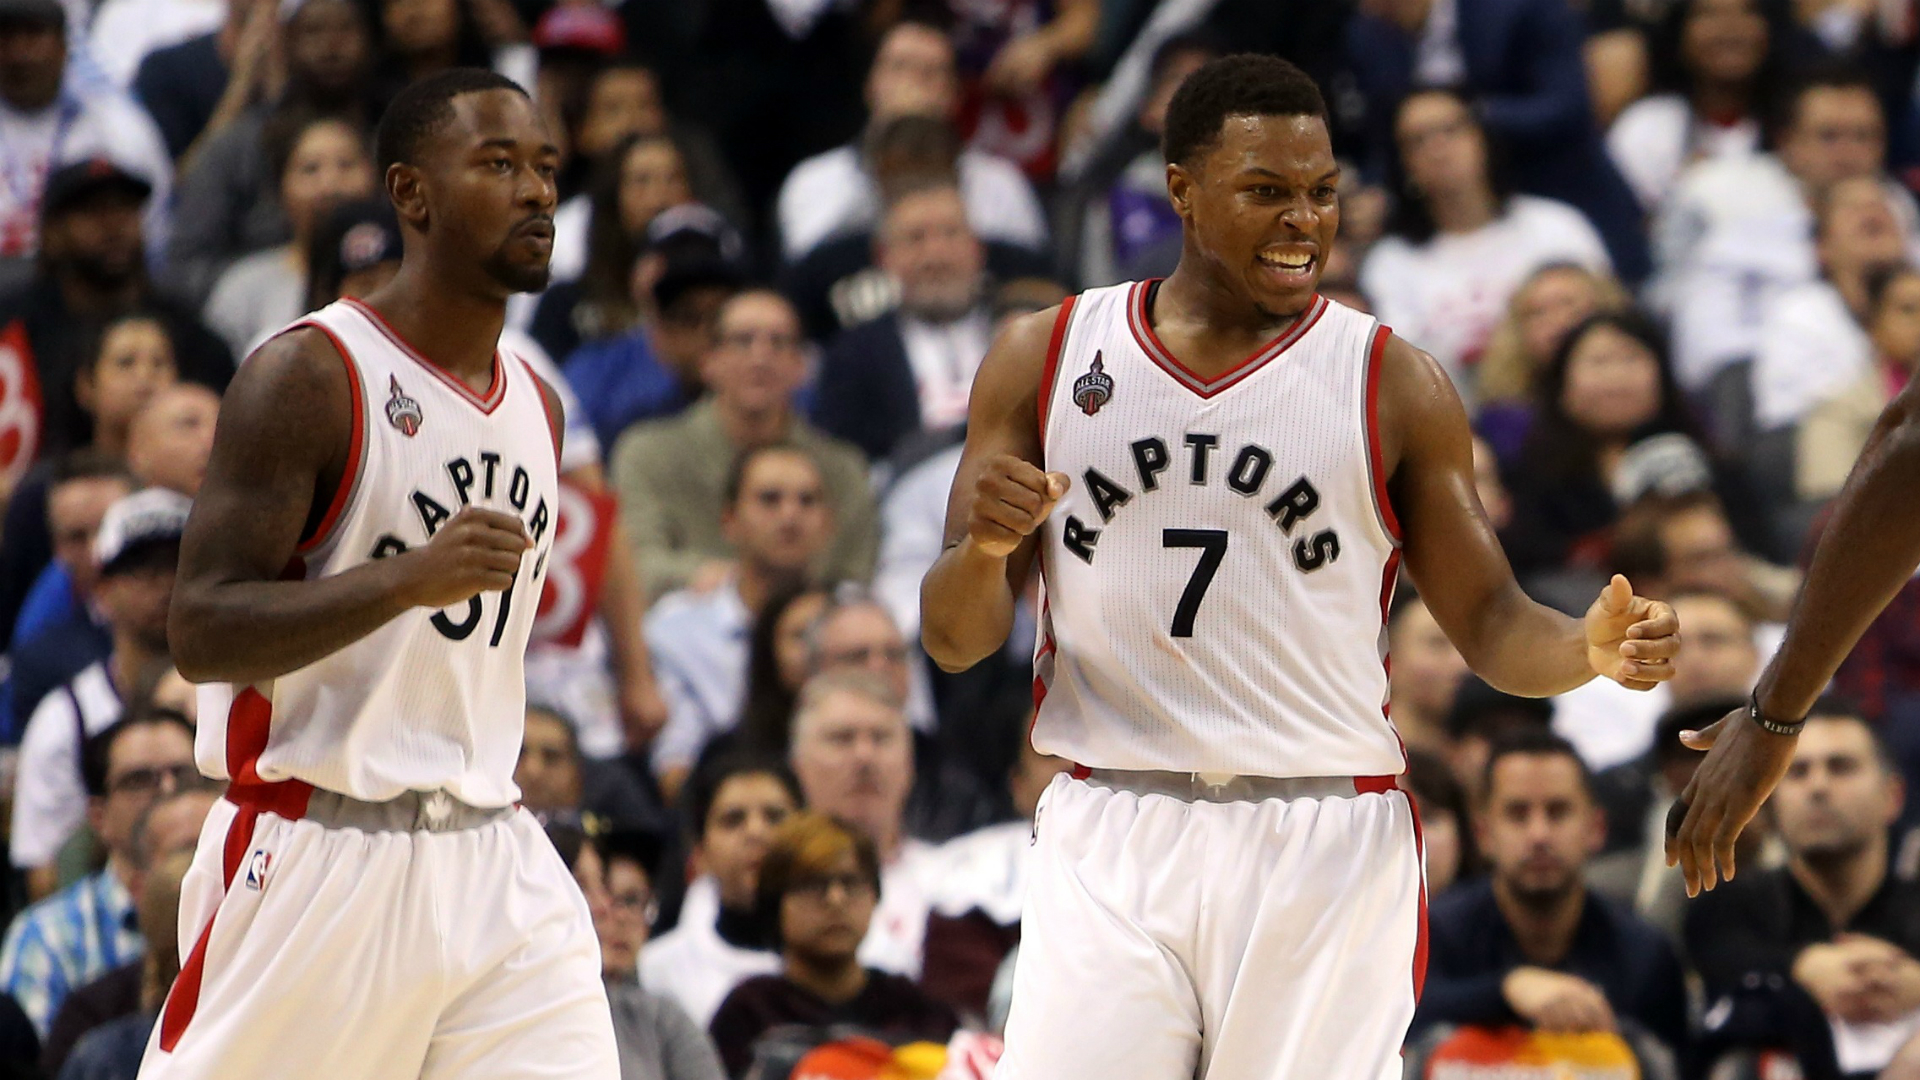 Kyle-Lowry-Terrence-Ross-Getty-FTR-110515